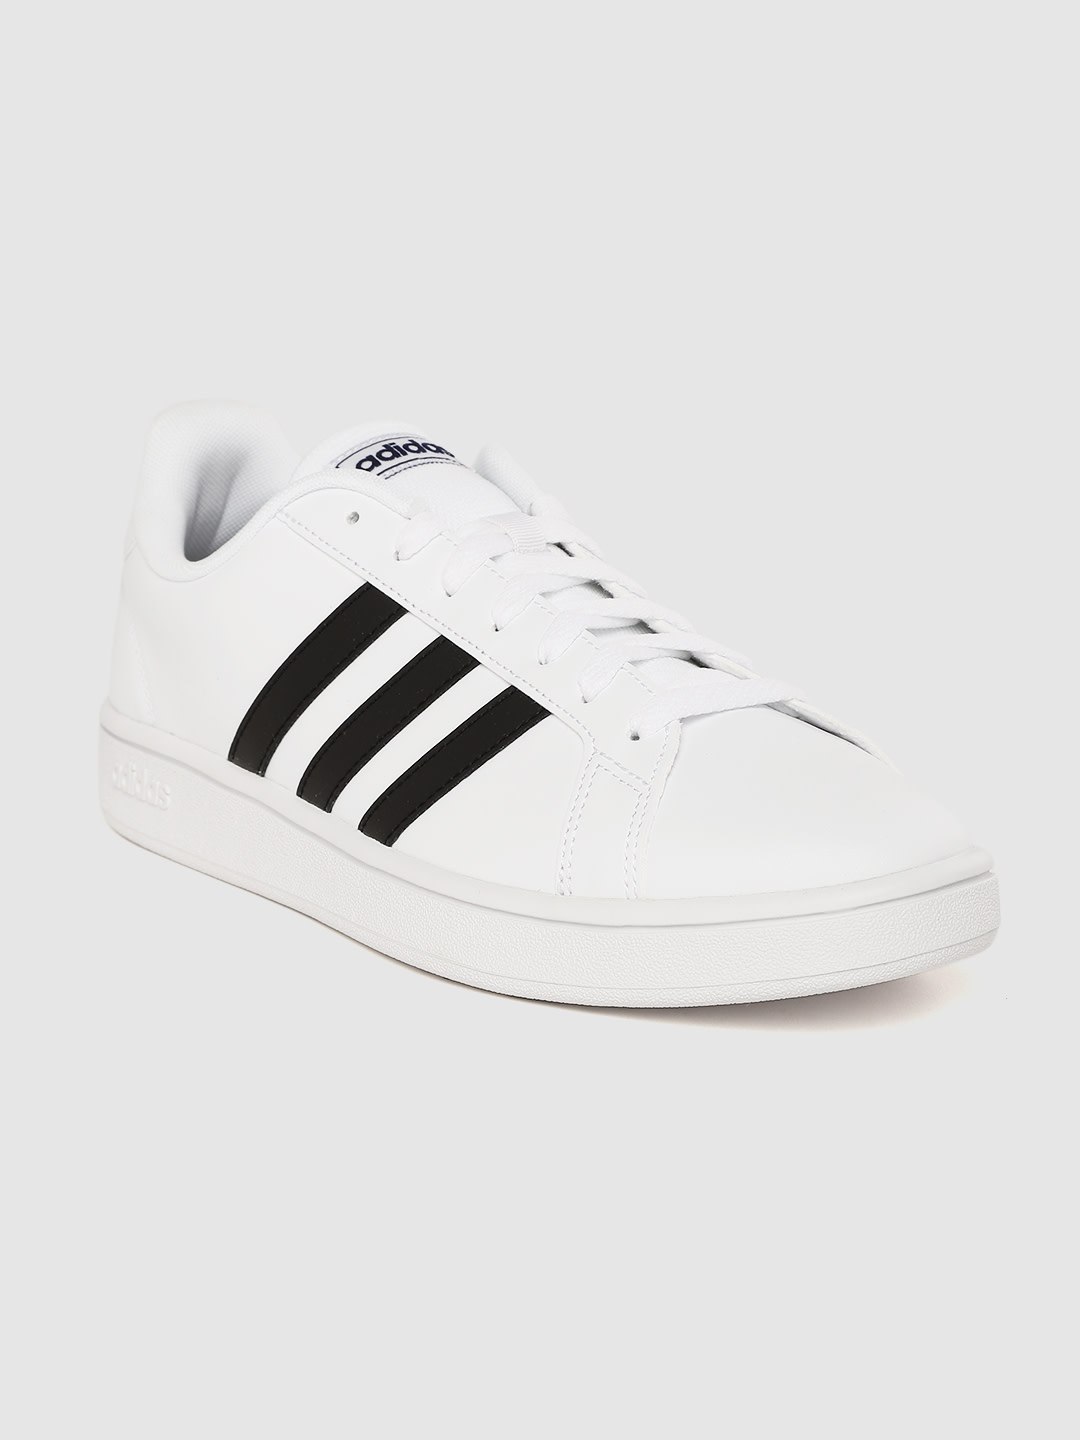 adidas | ADIDAS Men Solid Grand Court Base Tennis Shoes